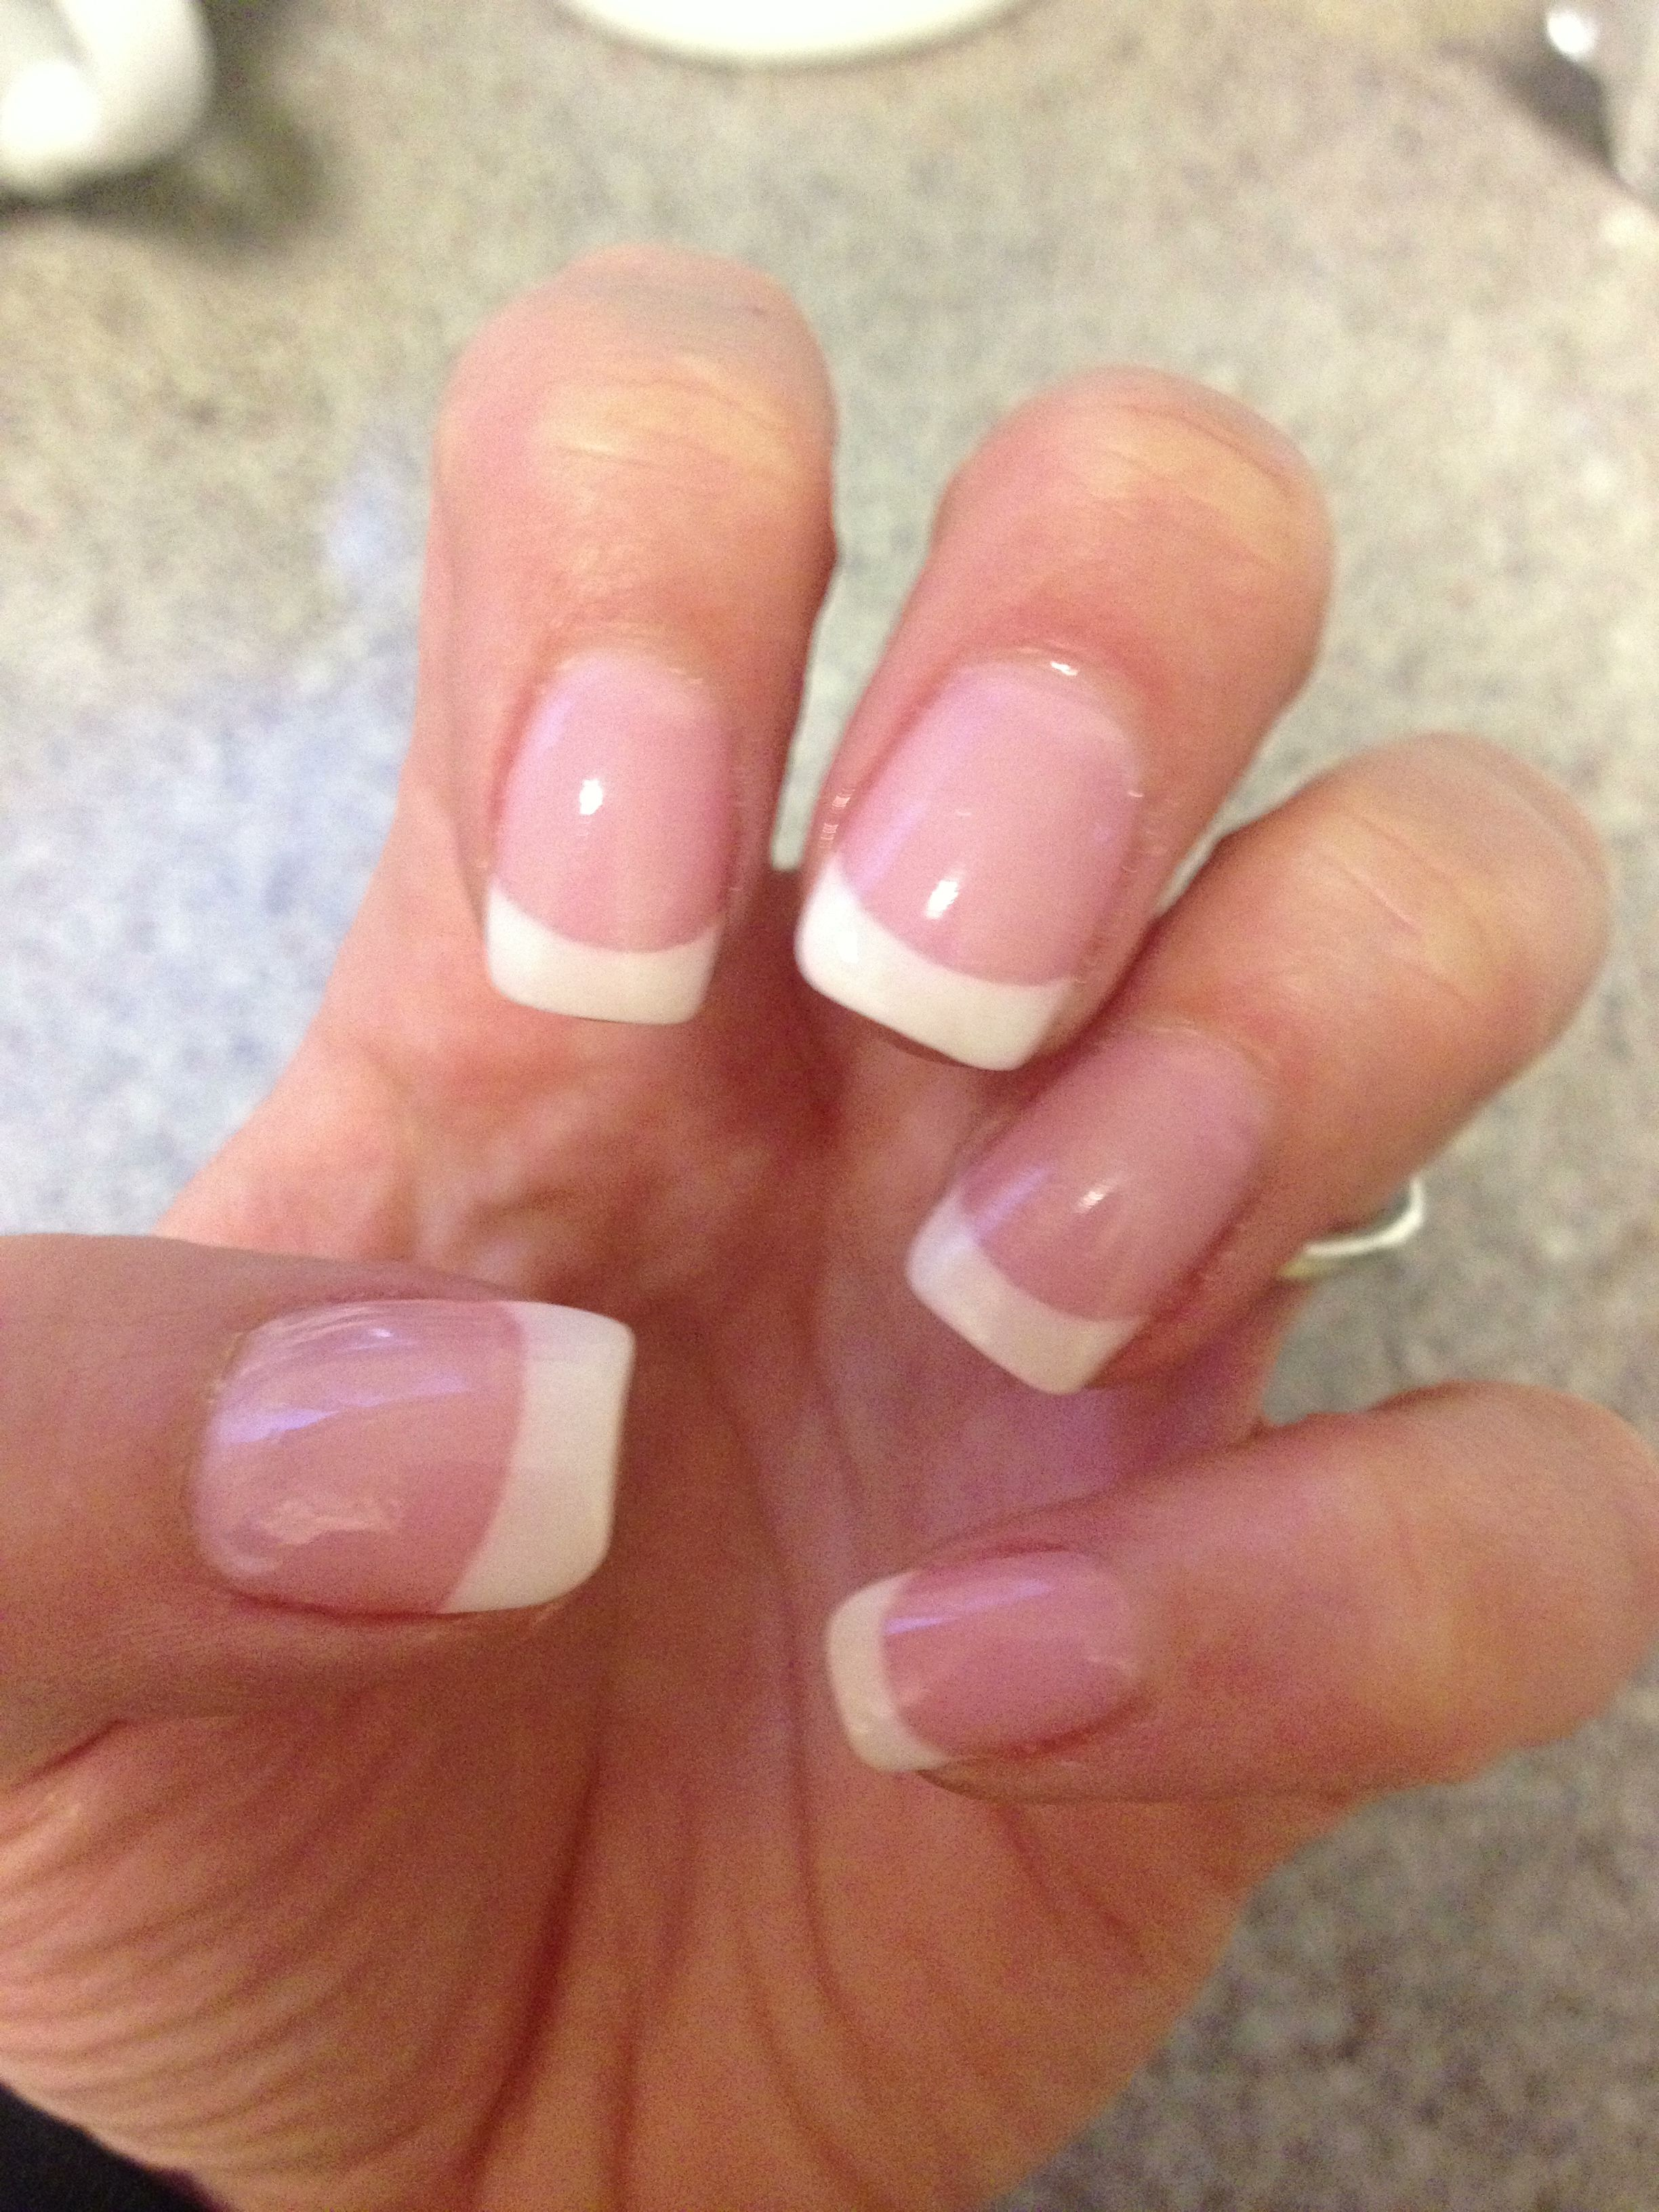 Sns Organic Promotes Growth Of Your Real Nails Looks Gorgeous American Made Looks Amazing Better Than Acryl French Tip Nails Dipped Nails Sns Nails Colors